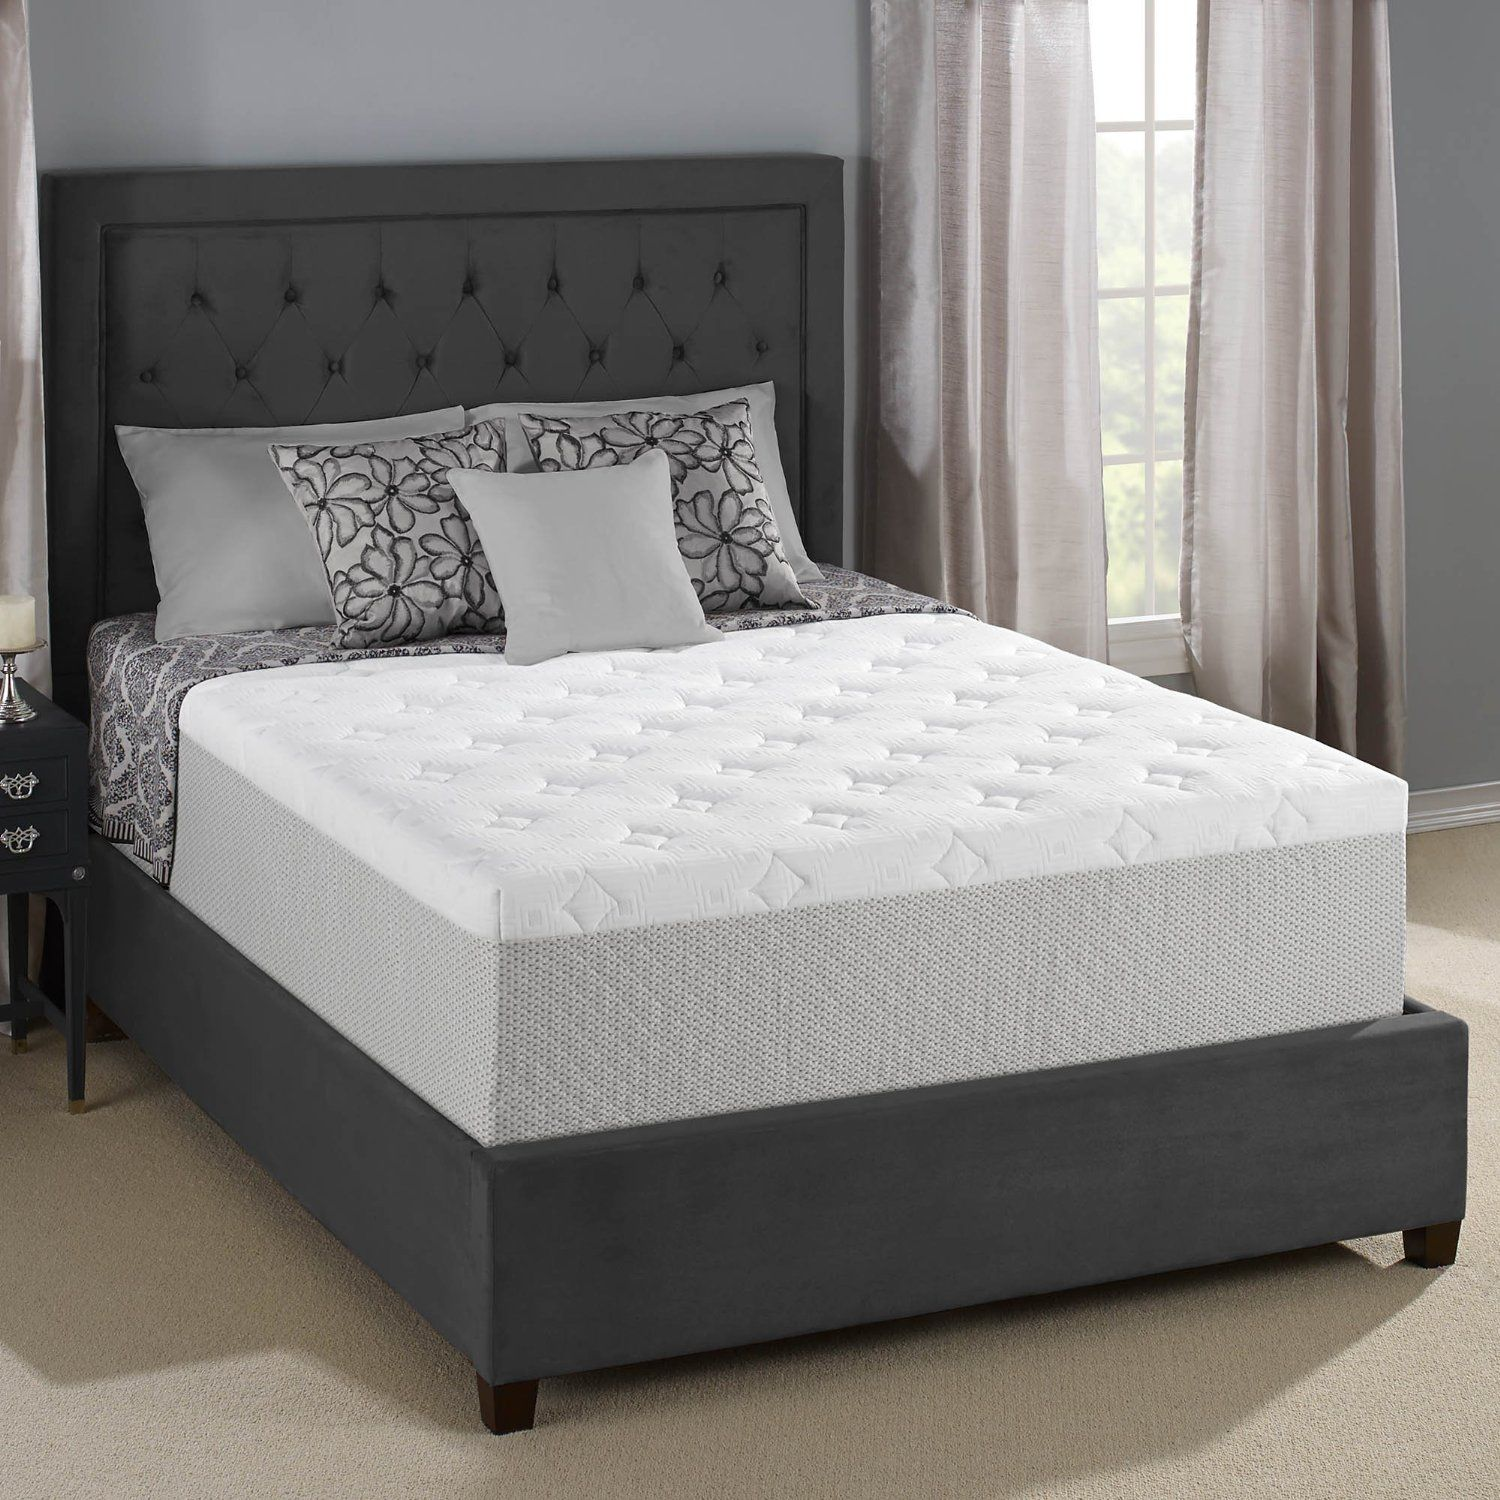 Serta 14 Inch Gel Memory Foam Mattress Review King Size Memory